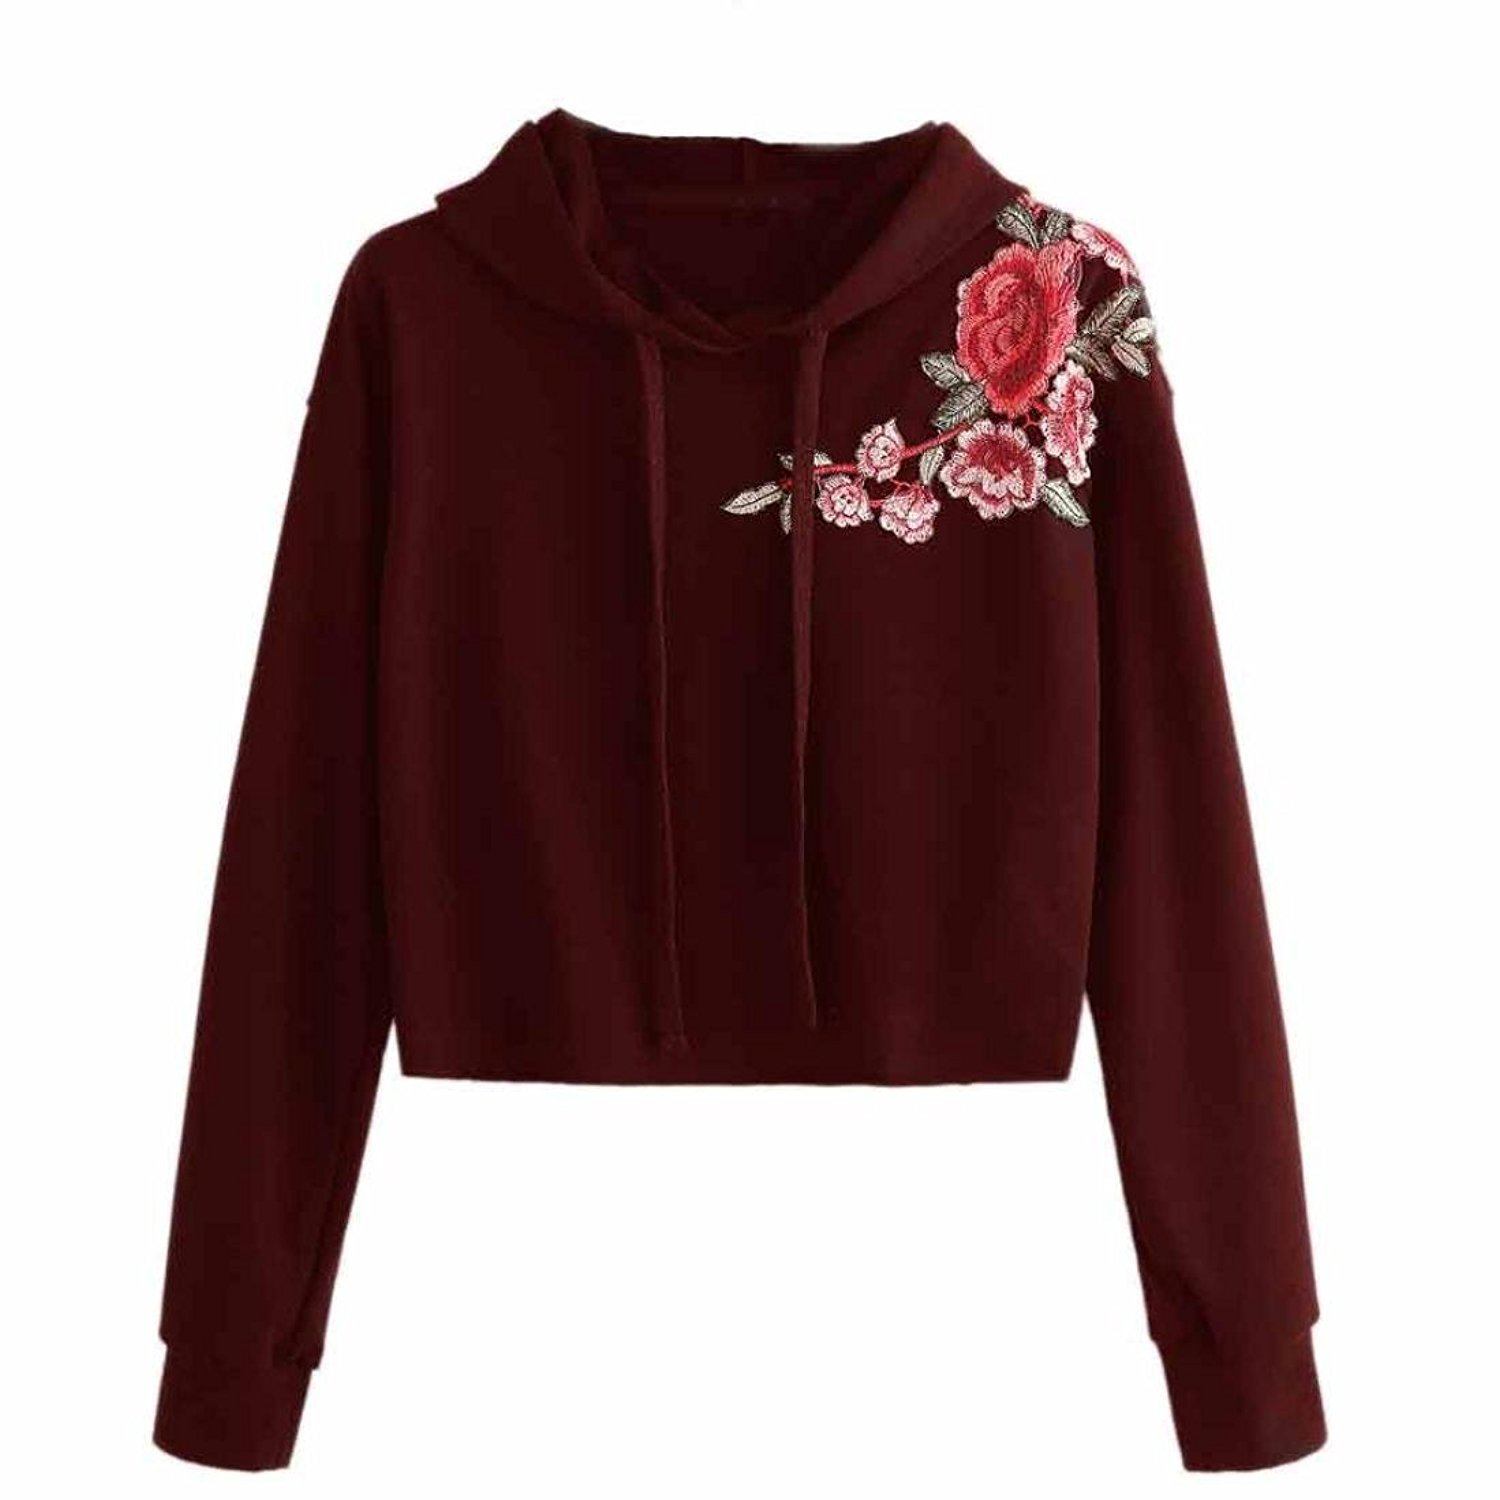 Women Hoodie Jumper Sweatshirt Mingfa Casual Rose Embroidered Sweater Crop Top Pullover Tops Blouse